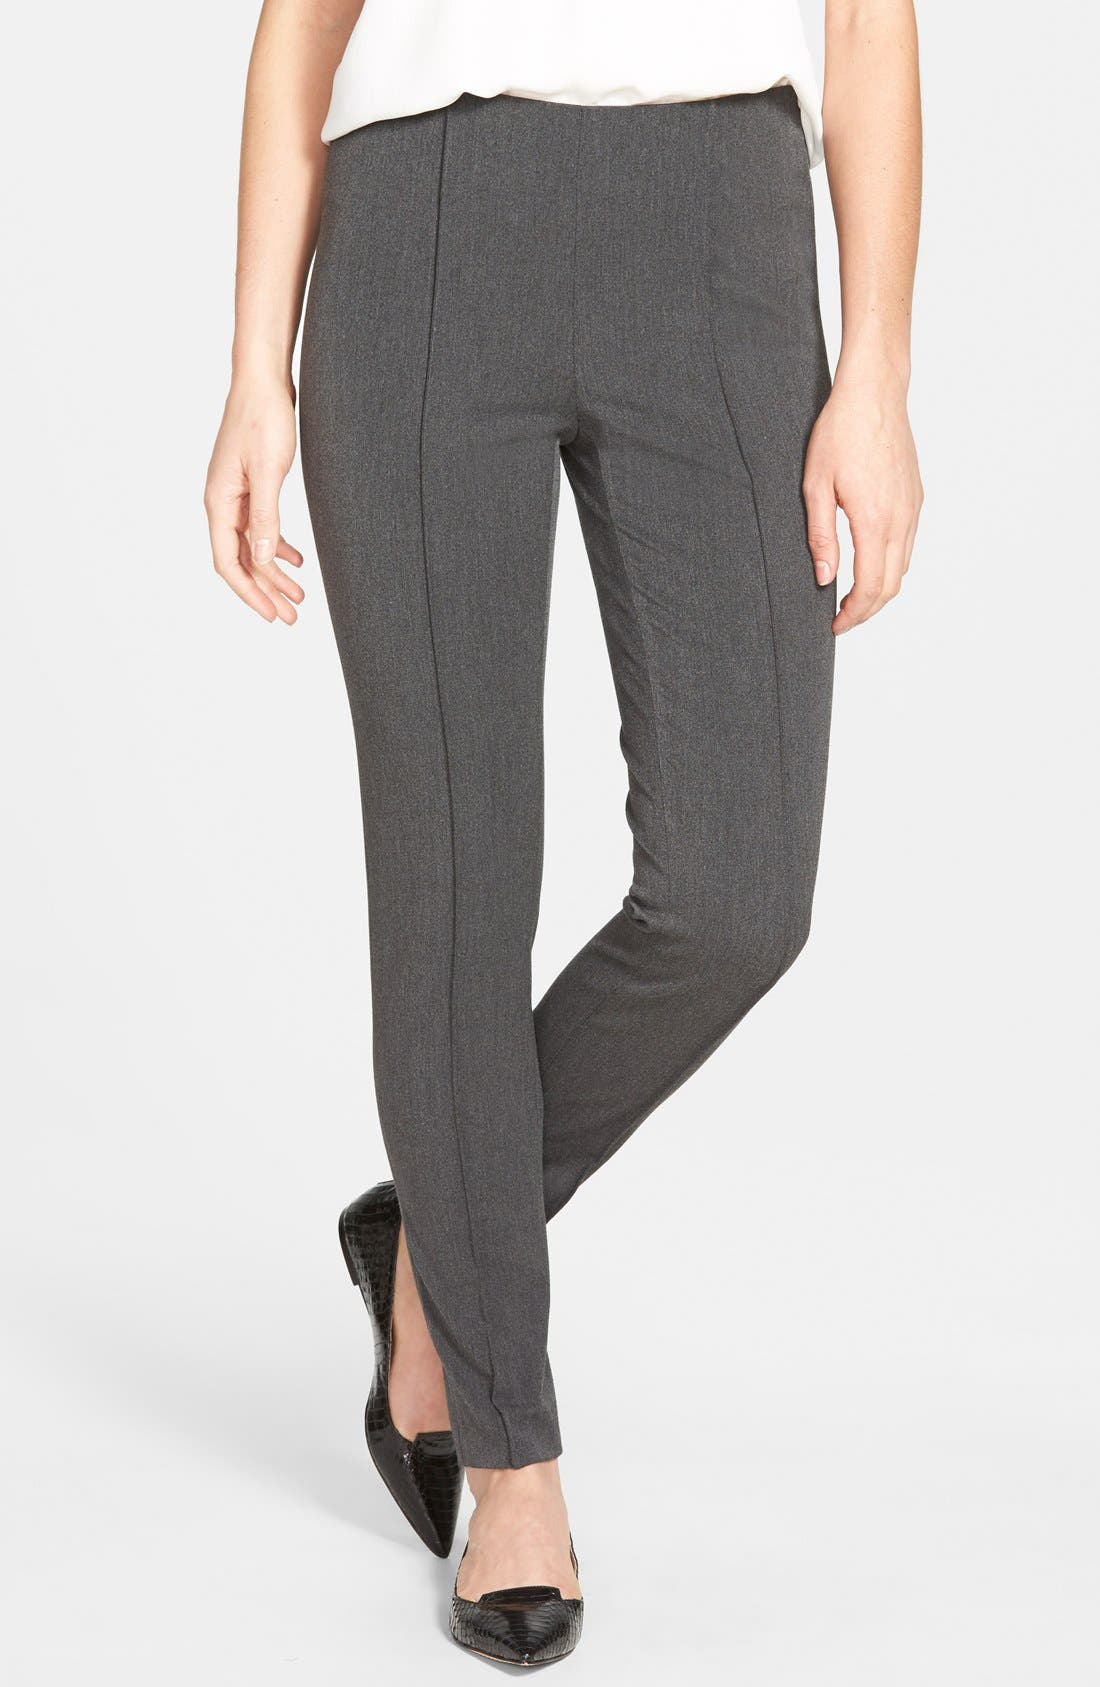 Alternate Image 1 Selected - Vince Camuto Side Zip Stretch Twill Pants (Regular & Petite) (Nordstrom Exclusive)